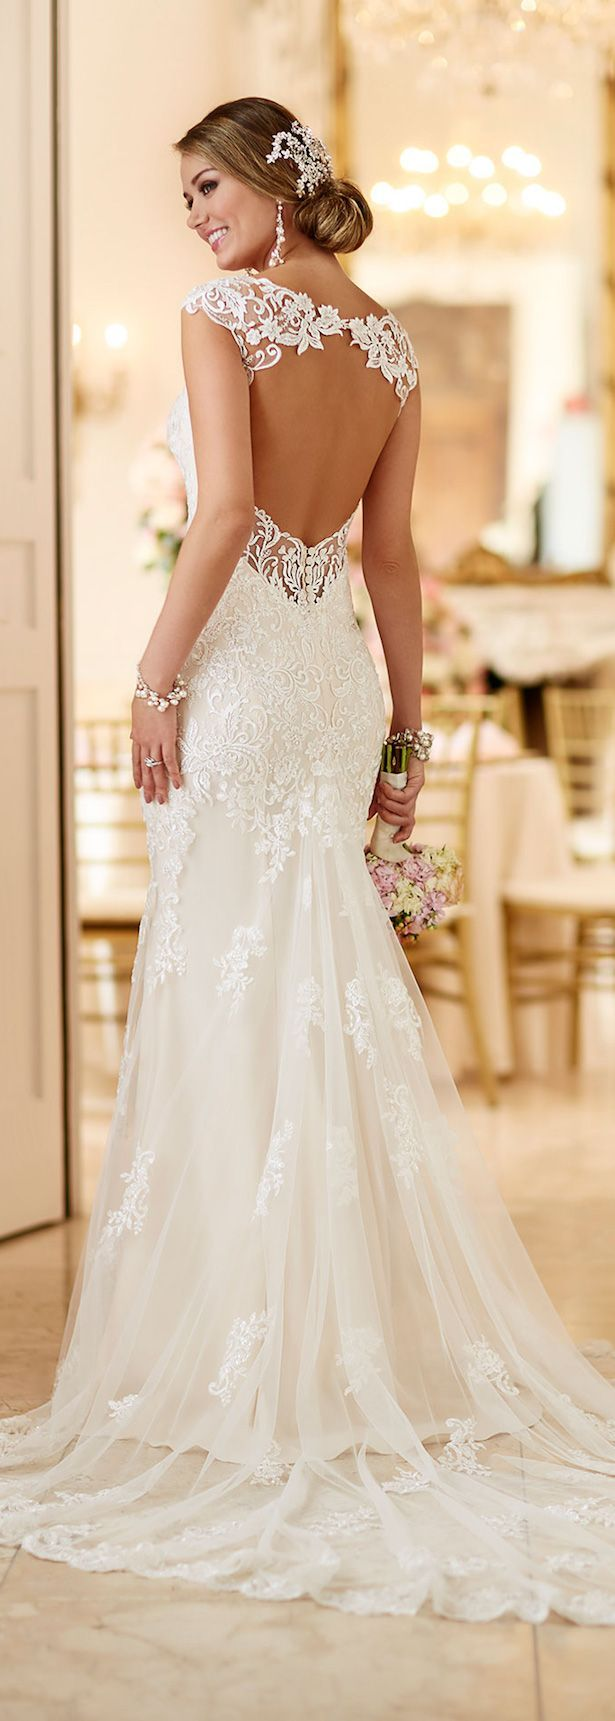 pretty wedding dresses cute wedding dresses Stella York Spring Bridal Collection